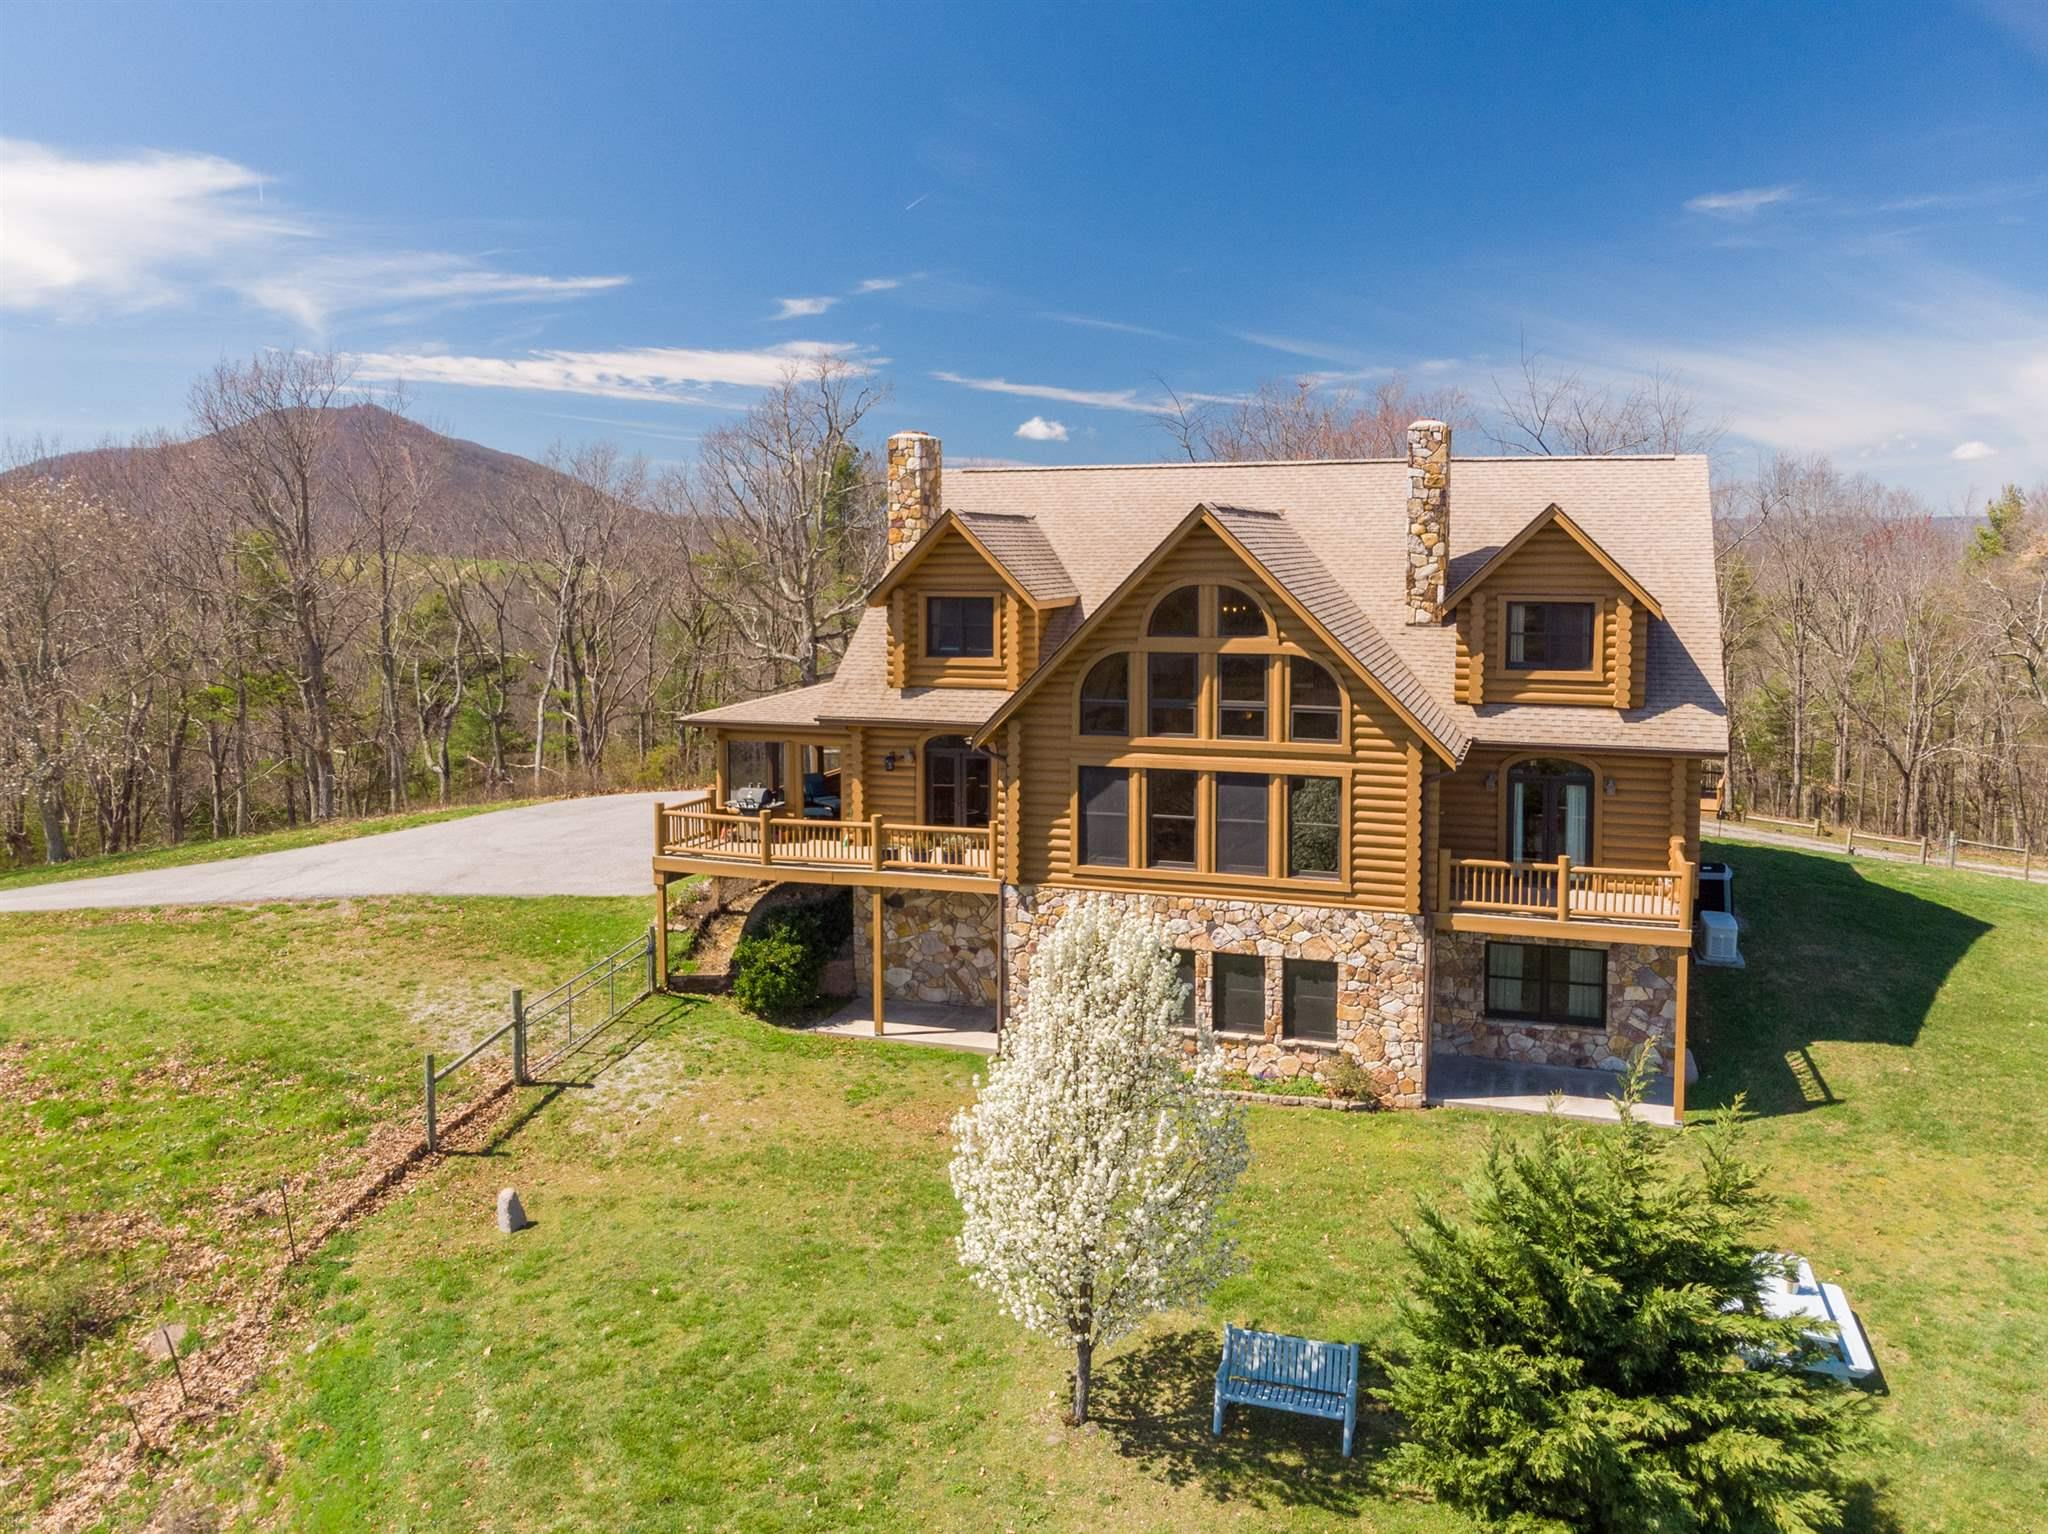 This stunning custom built 5 bedroom 4 1/2 bath log home situated on 65 acres is an outdoor enthusiast's dream come true! Enjoy magnificent 360 degree views of the beautiful Blue Ridge Mountains while you escape to the peace and quiet and rustic elegance this exquisite home offers. The gourmet kitchen boasts custom cabinets, Viking appliances, gas range, impeccable granite countertops, and enormous walk-in pantry.  The master bedroom is an owner's sanctuary & features a spacious en-suite bath with spa shower & tub, large walk-in closet, separate sitting room, and its own fireplace. Sit back & relax with a good book in the main floor library while sitting next to a roaring fire or watch your favorite movie in your own private theater room. Enjoy stunning views with your morning coffee from your own private deck, your favorite hobby in the huge detached double garage, an evening hiking down to the creek or to the two-stall barn to check on the resident alpacas. Showings by appointment.